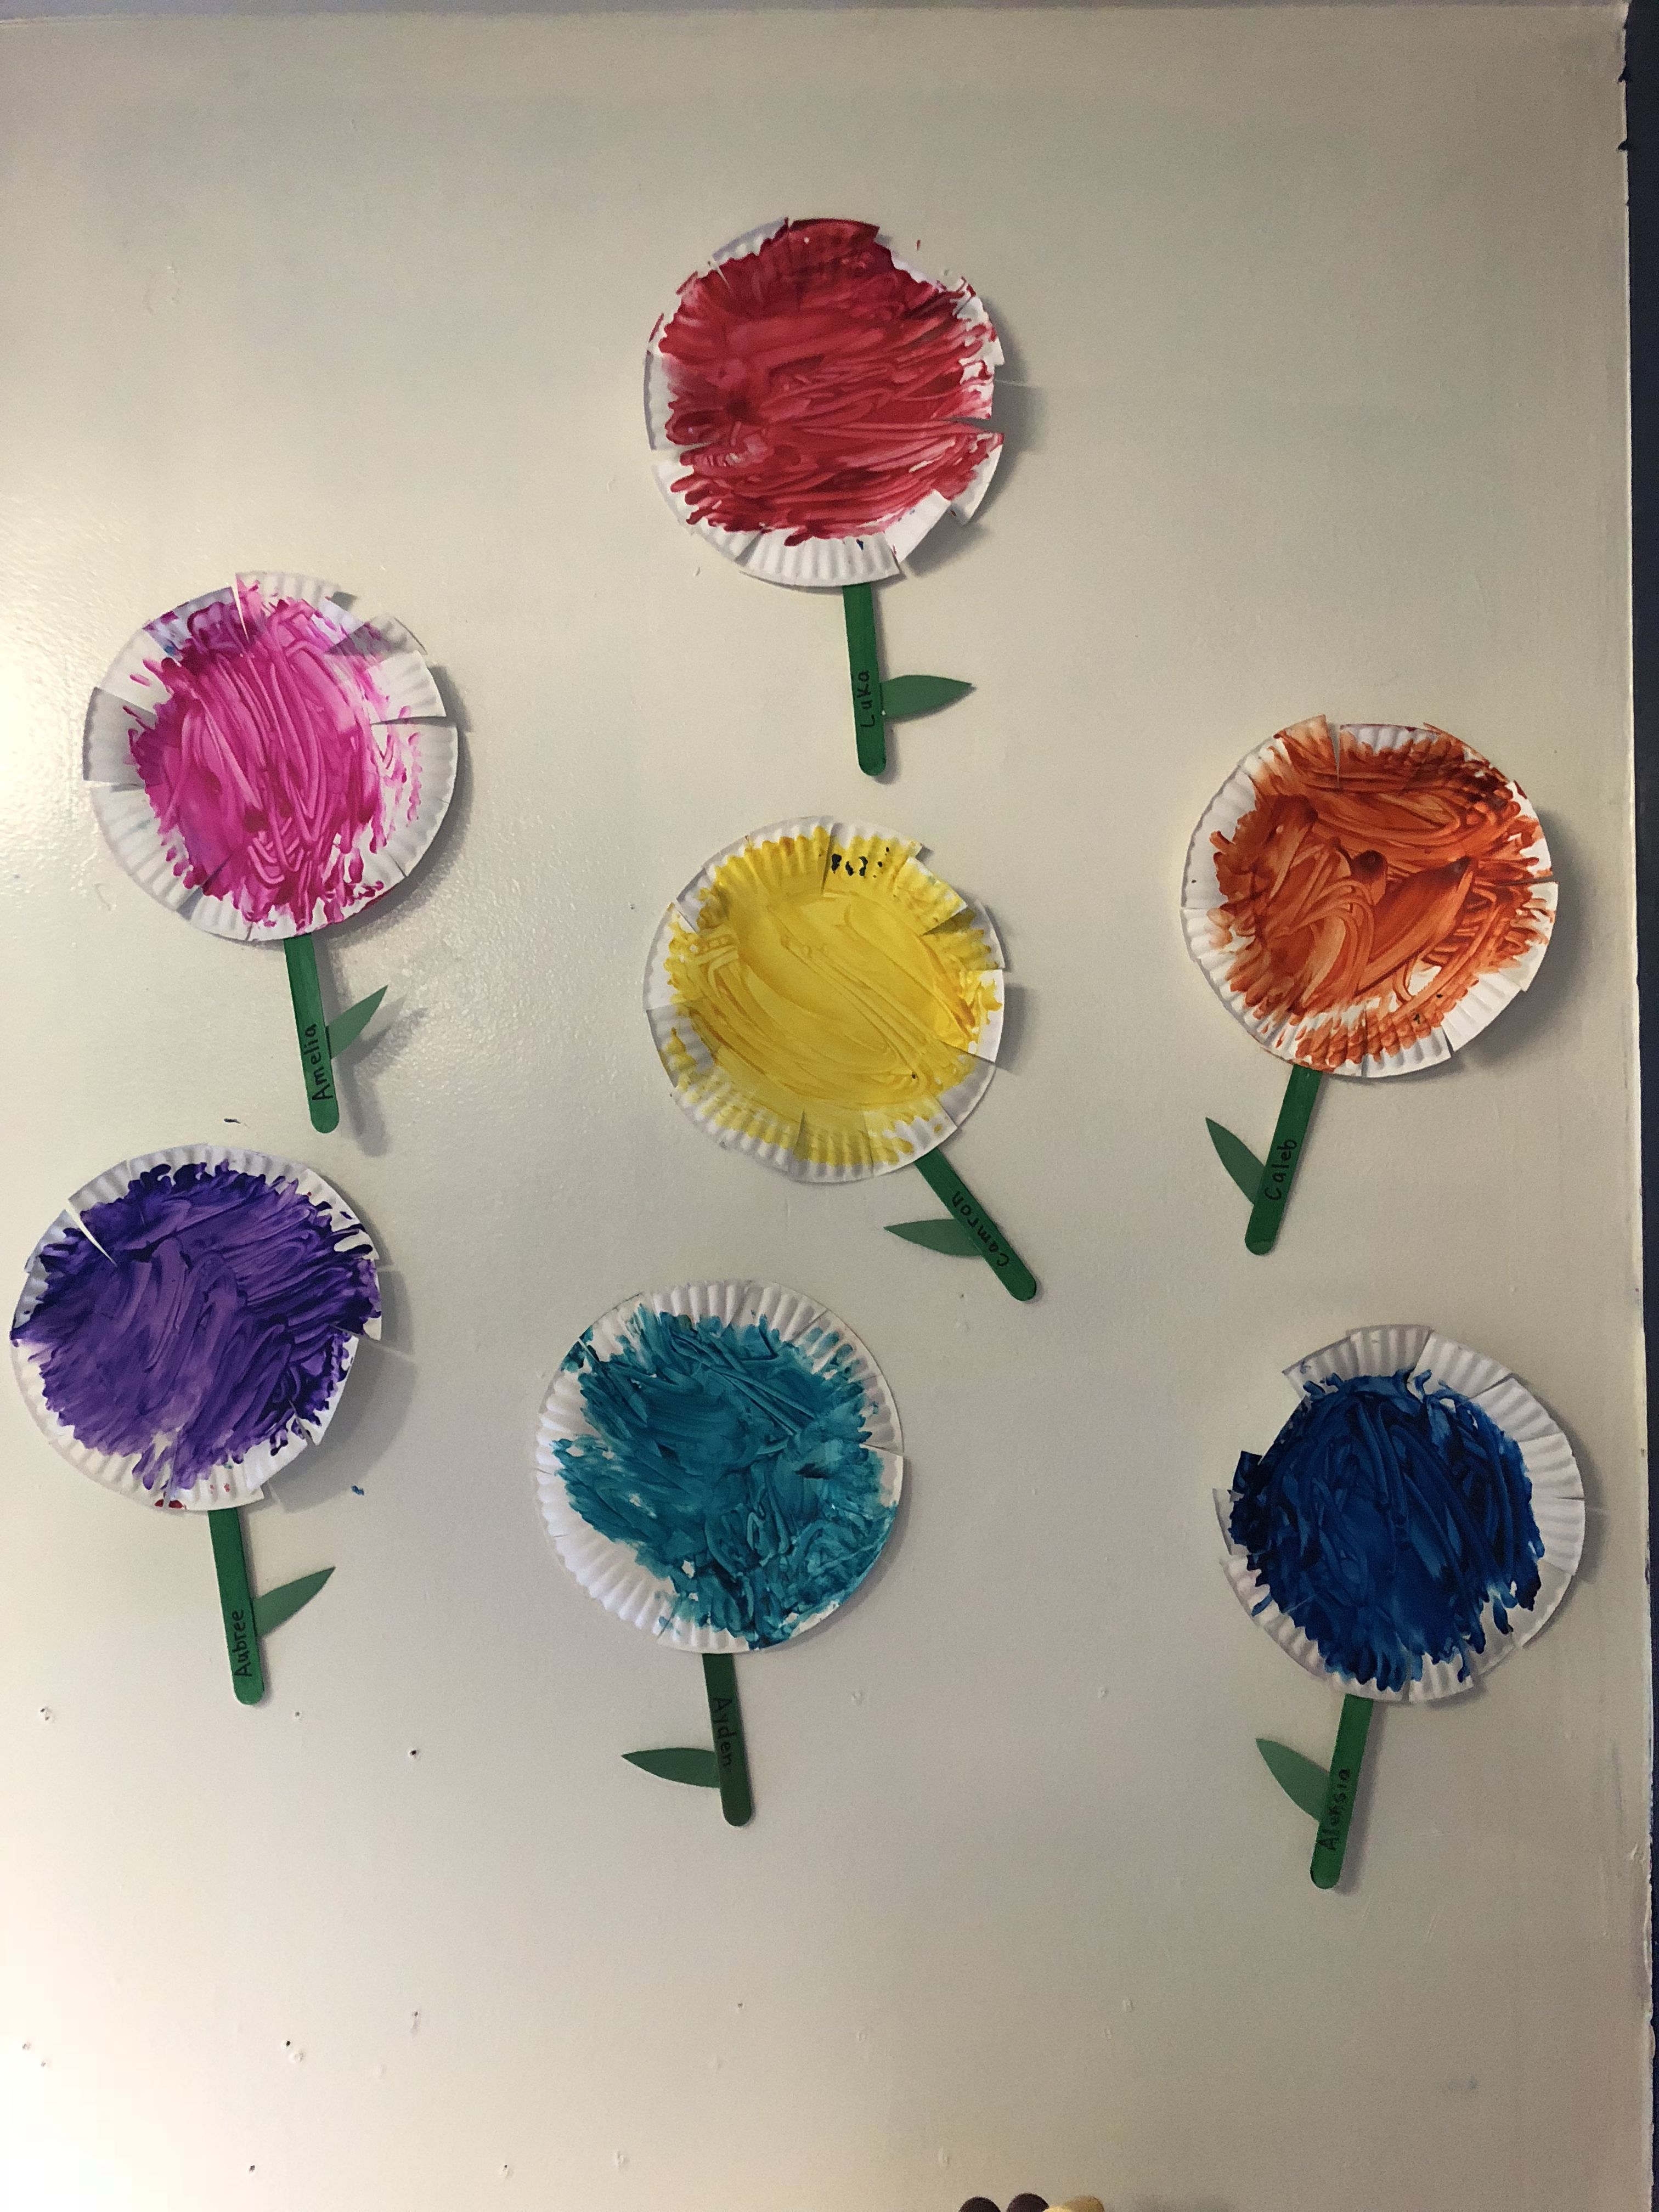 Painted Paper Plate Flower Art Activity For Toddlers And